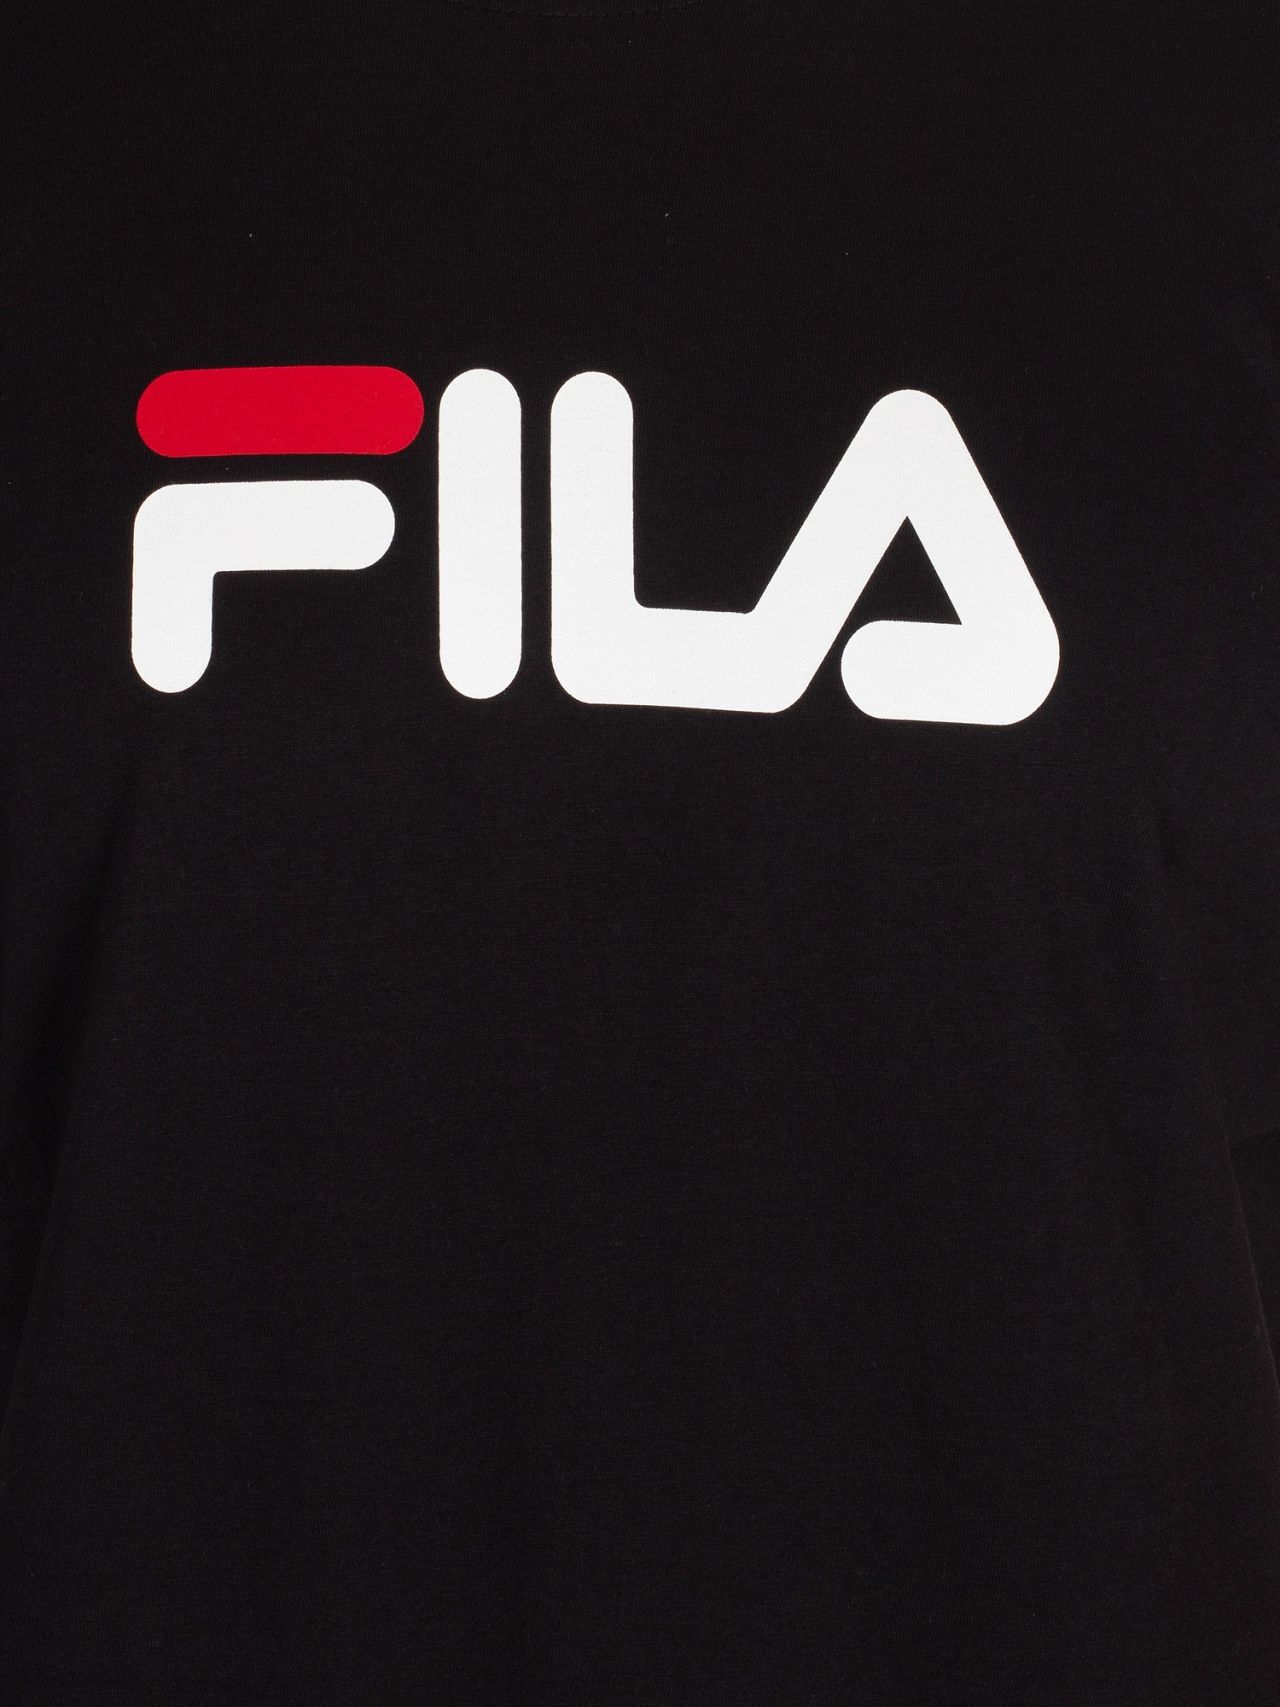 5758811f03214 Fila Black/White/Red Eagle T-Shirt | Standout